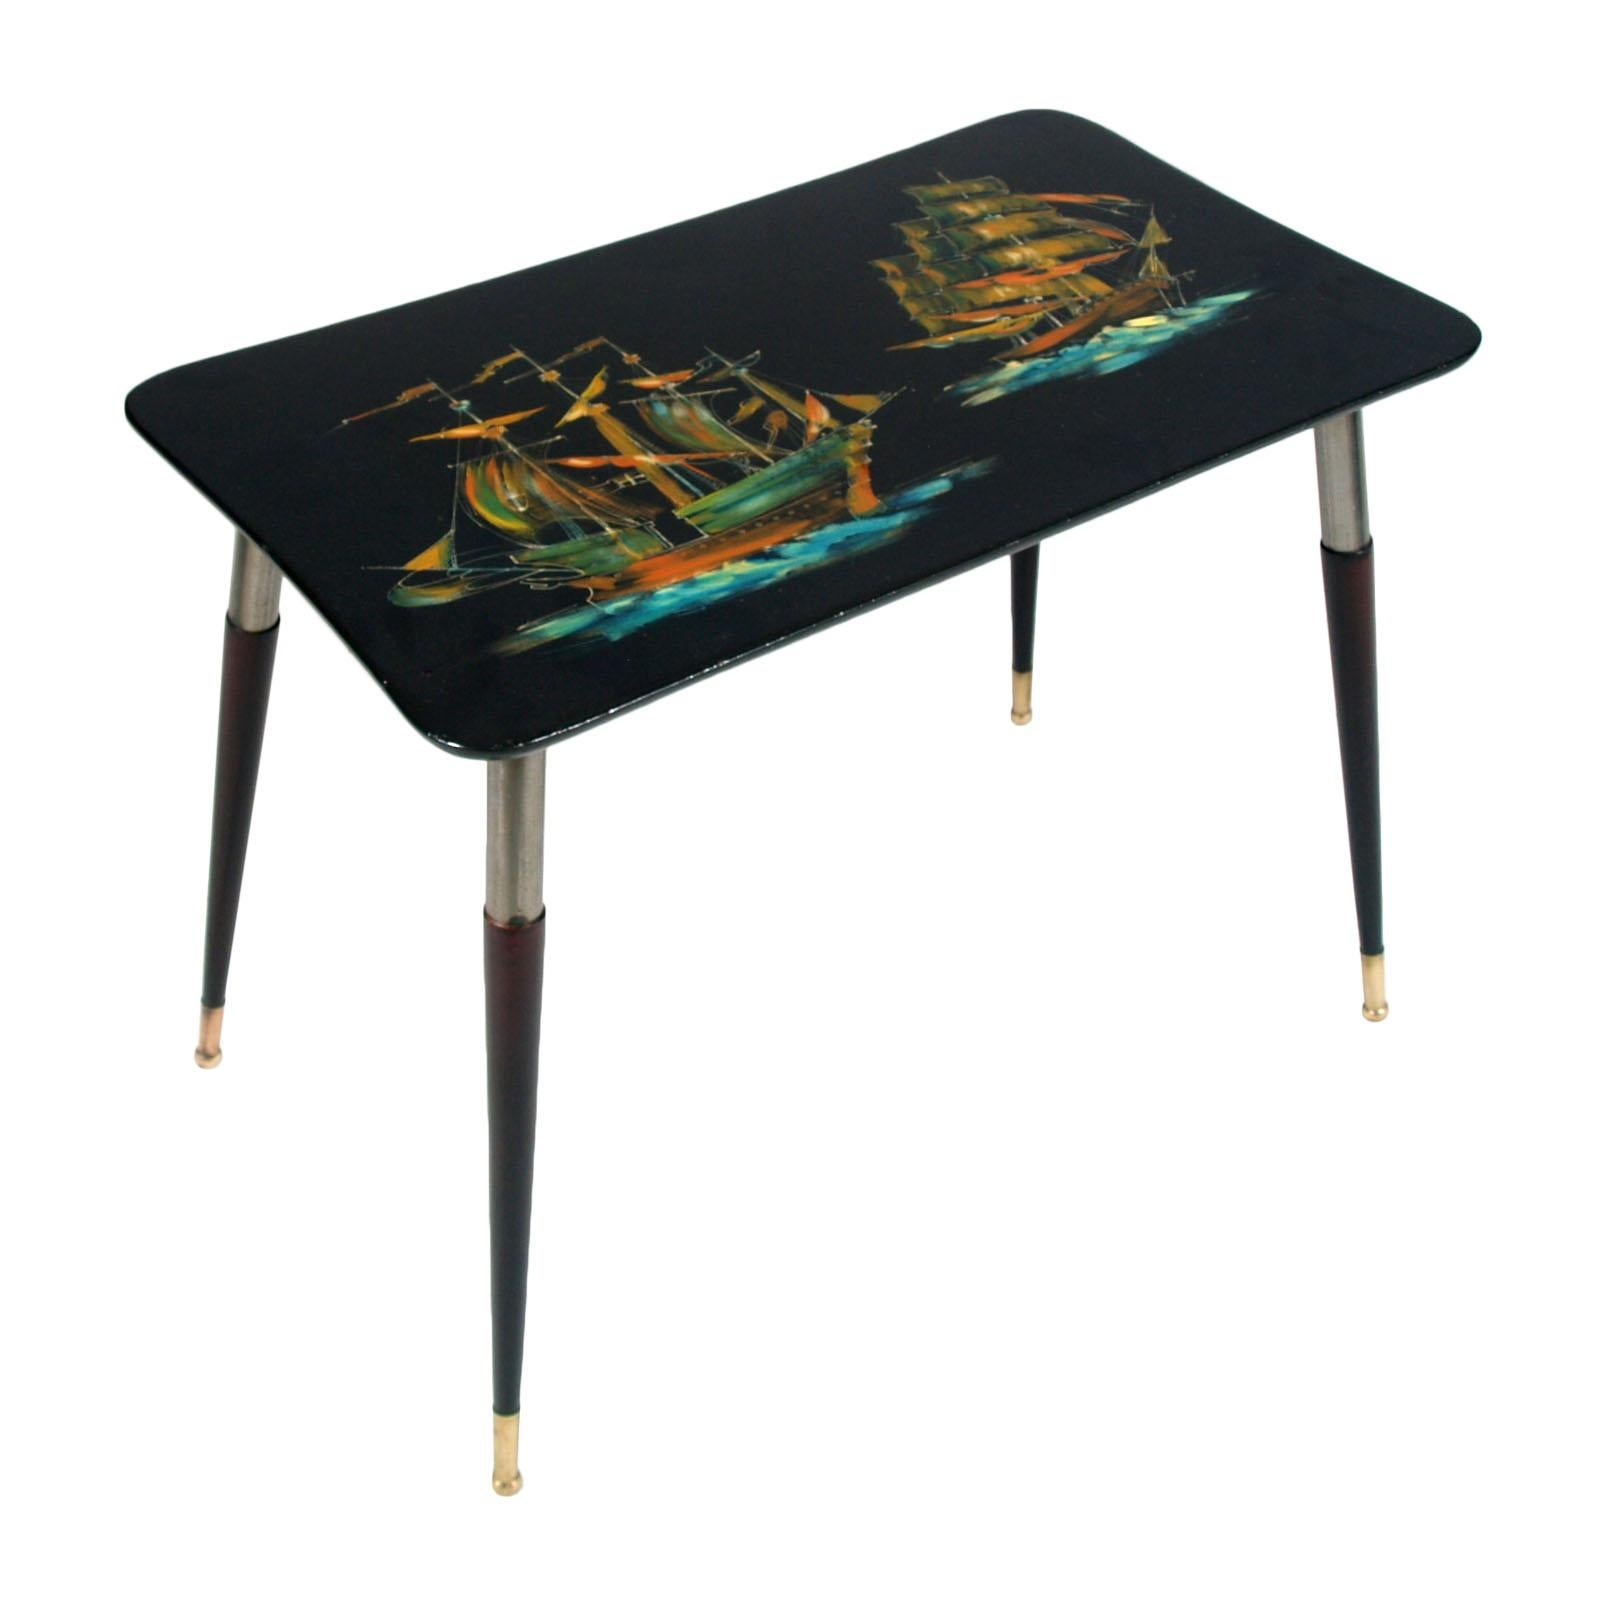 1950s Piero Fornasetti Attributed Coffee Table Lacquered, Printed Sails on Top